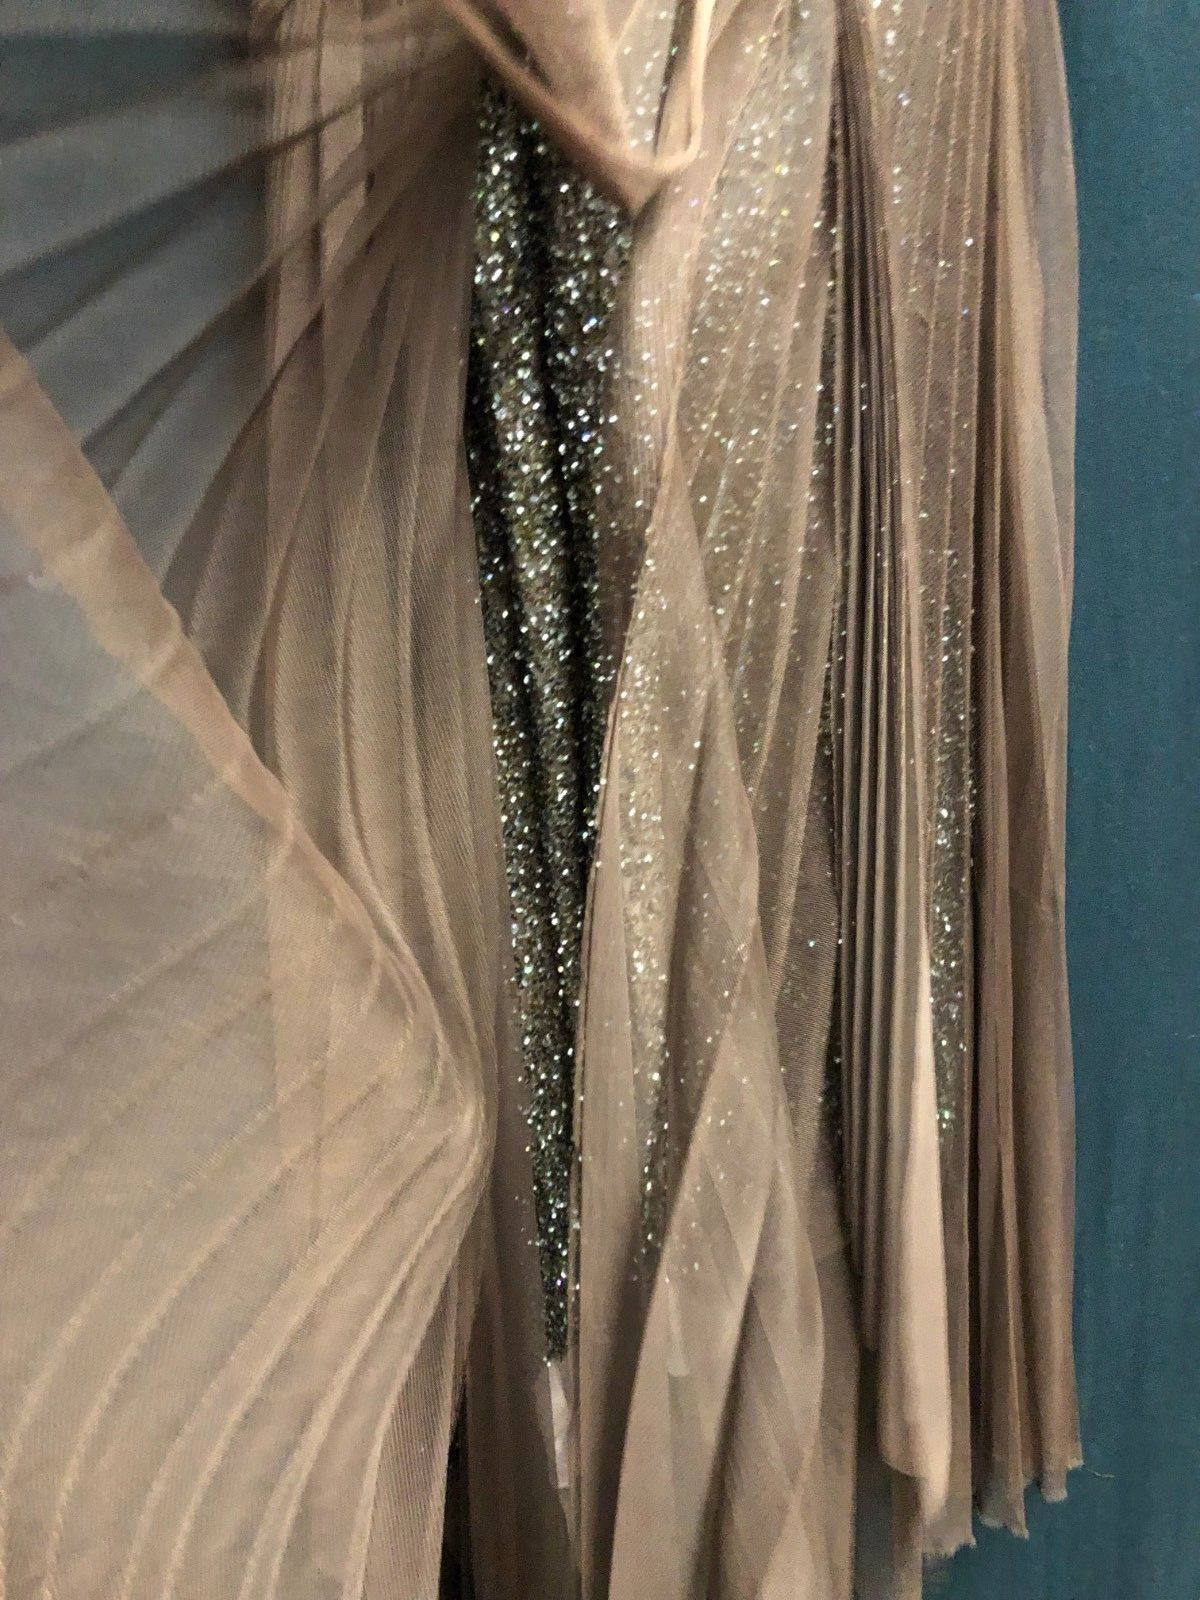 NEW BCBG Max Azaria ATELIER Dress GOWN BROWN Embellished Chiffon *0-2 (A#57)